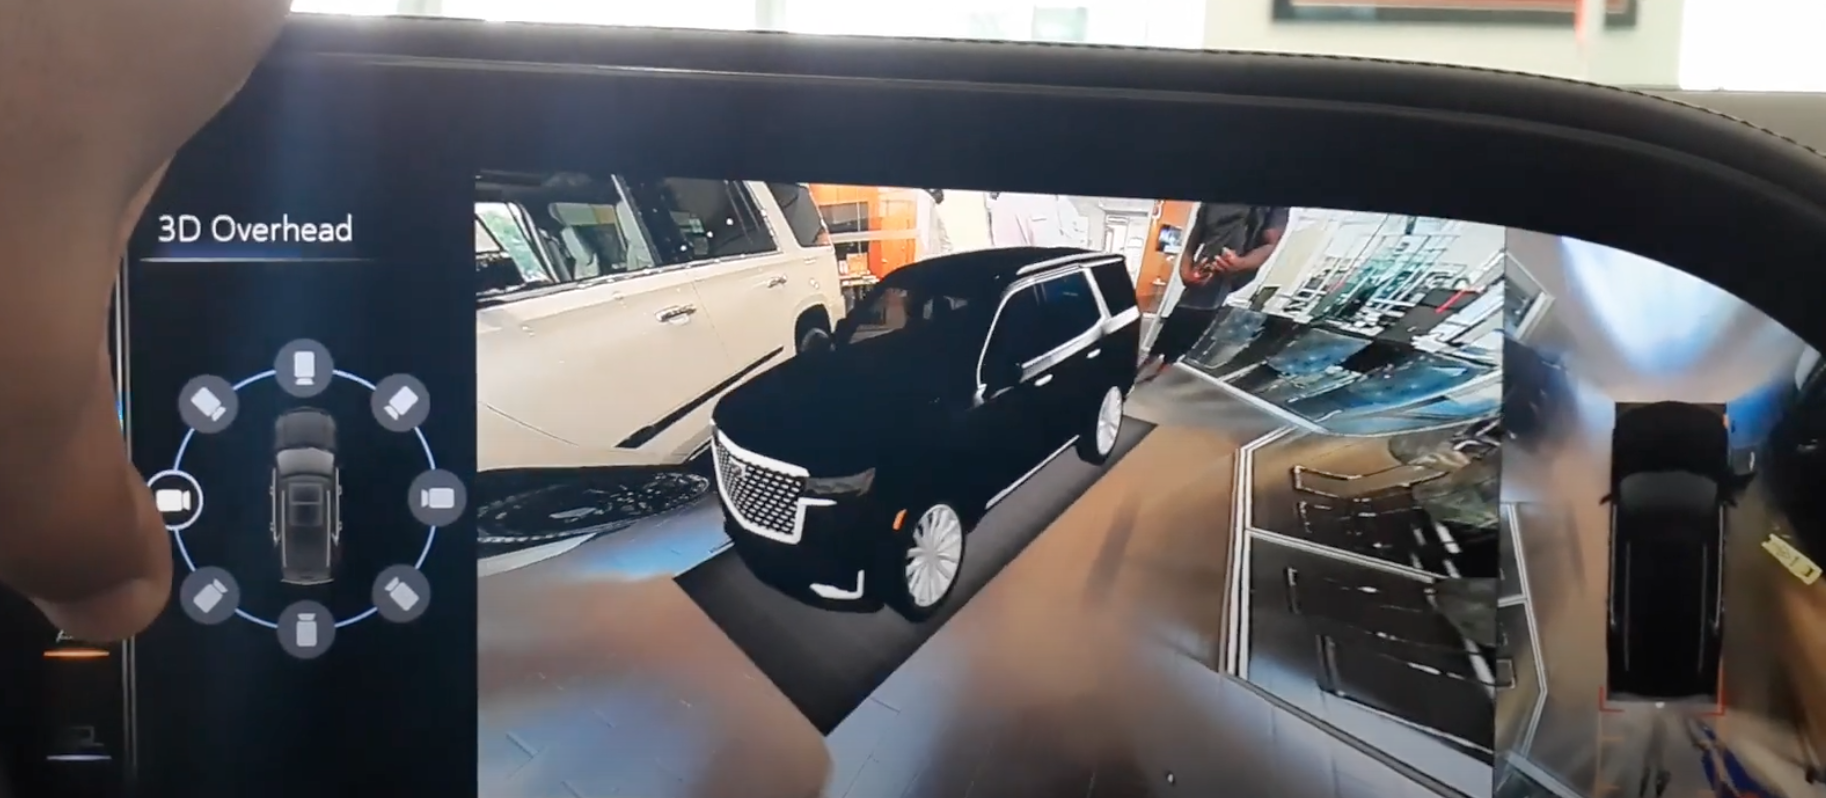 360 camera showing the side of the 3D model of the car on the infotainment screen